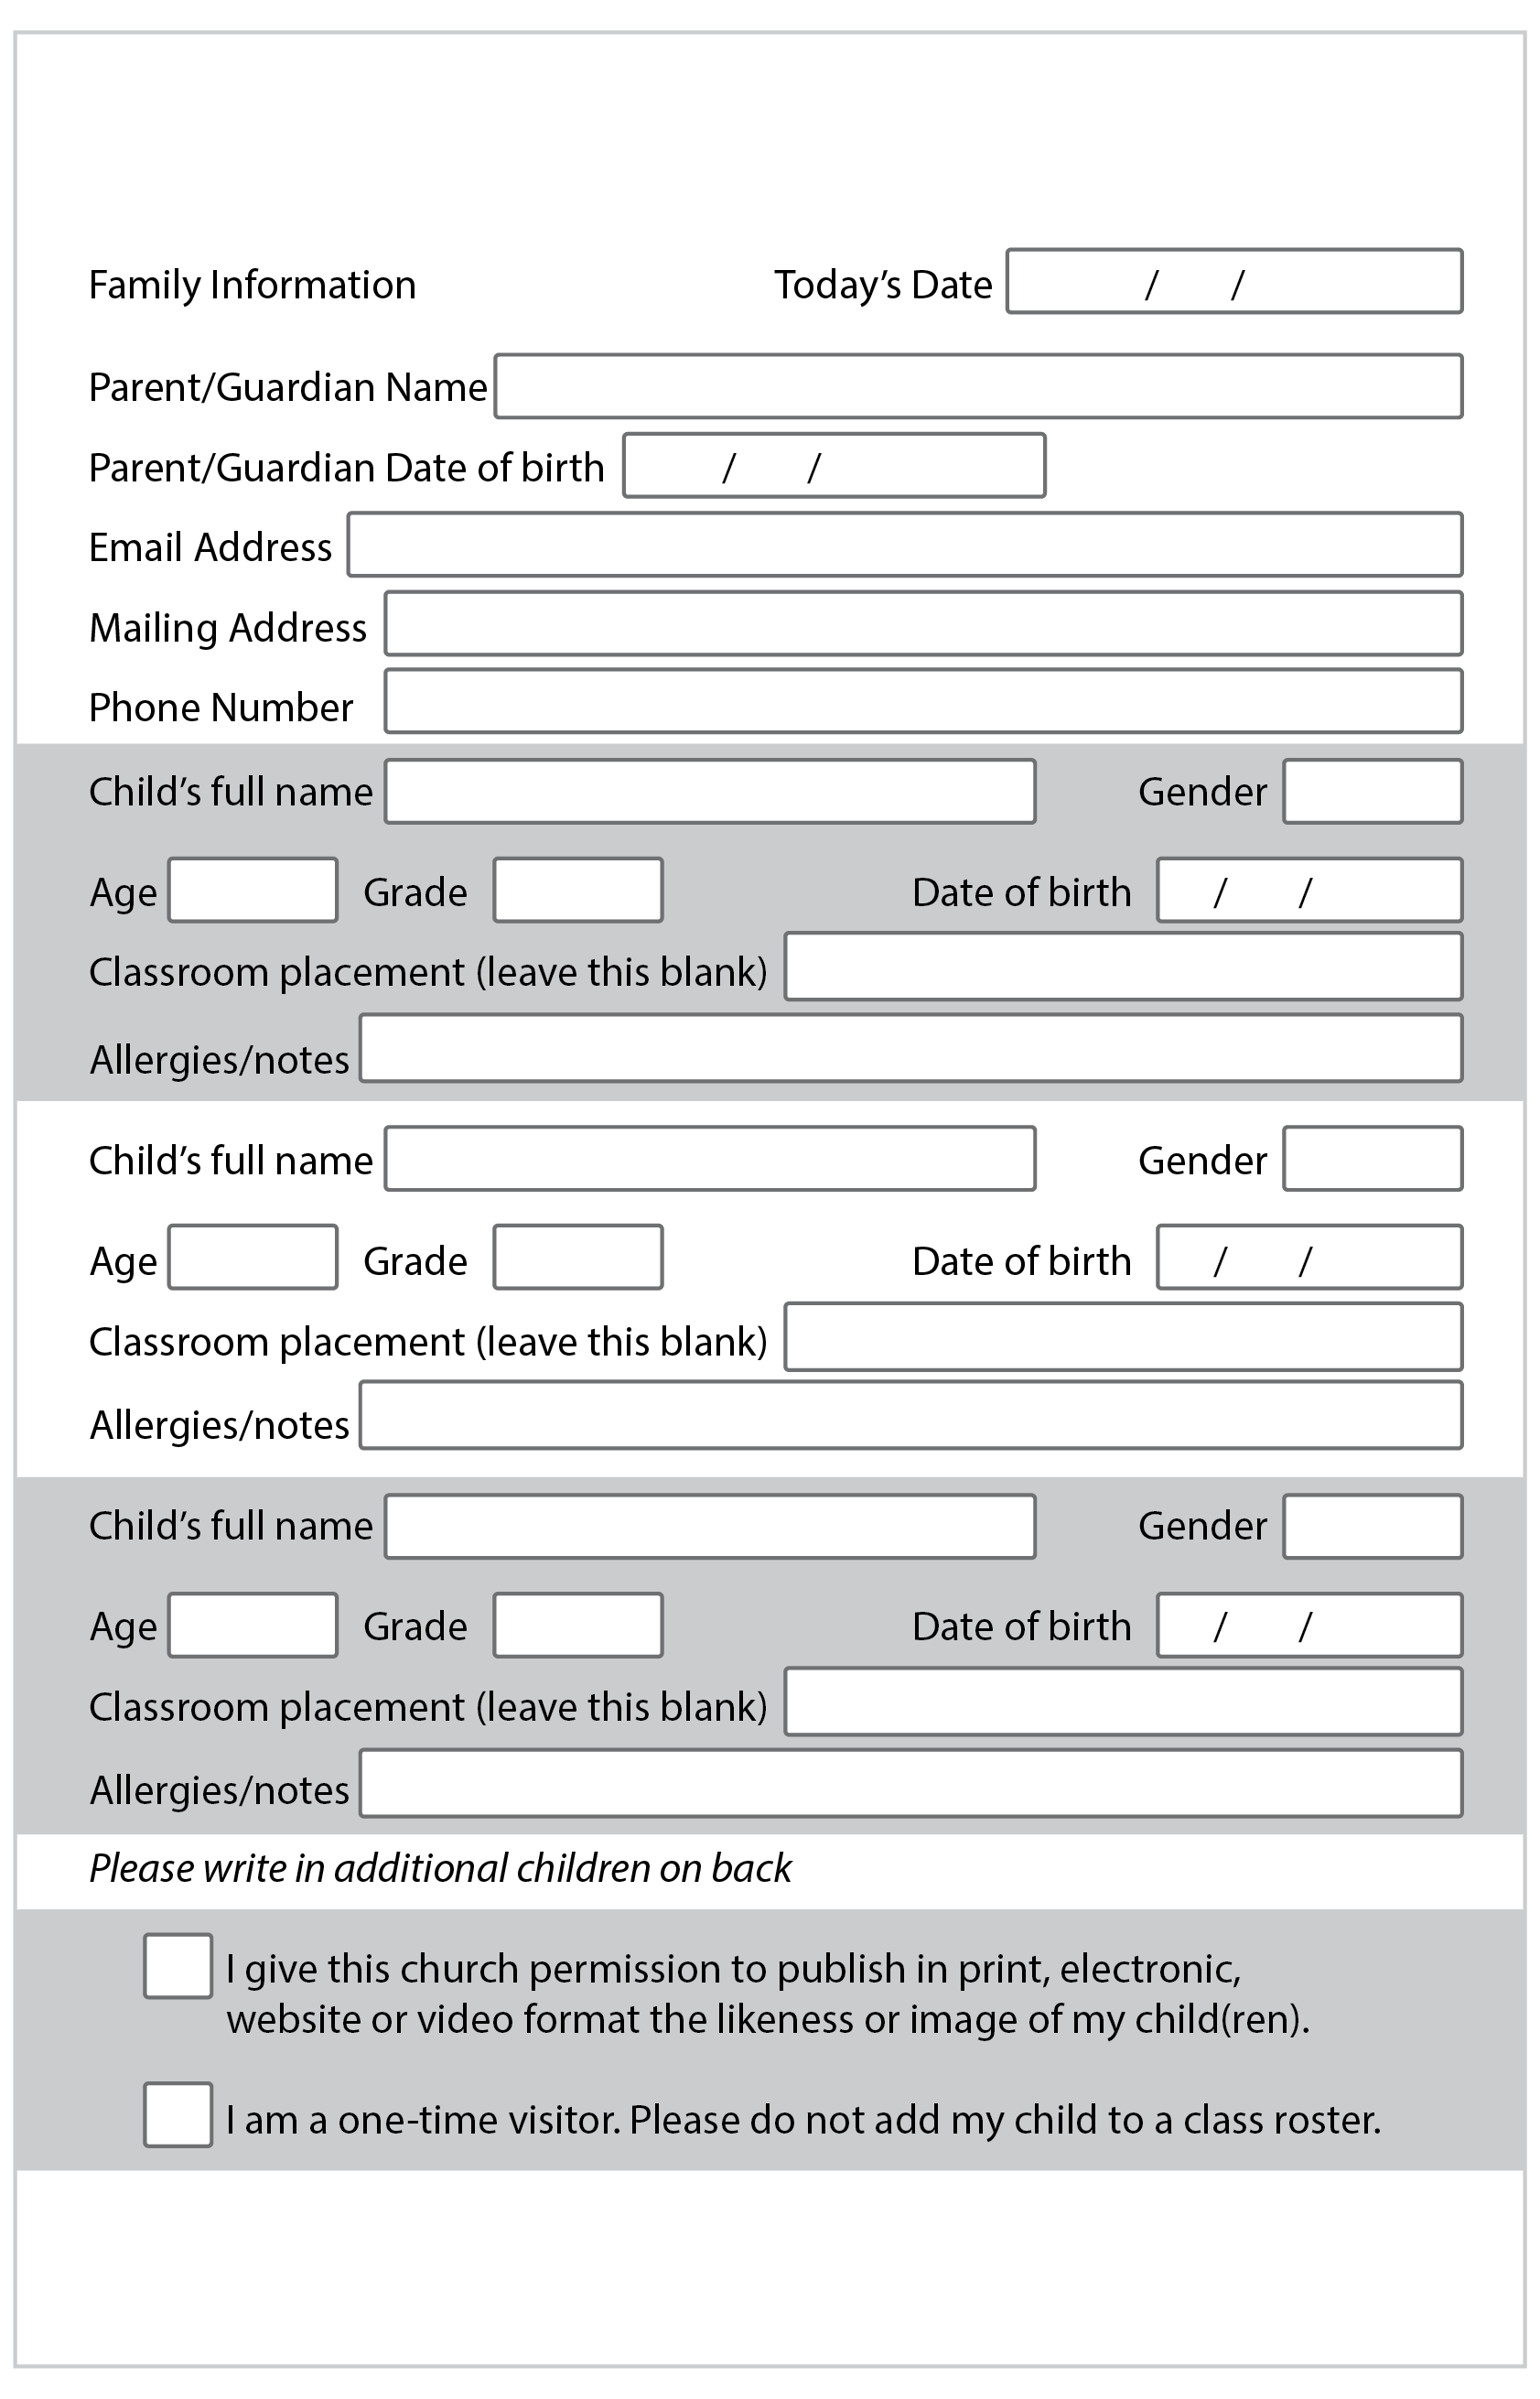 photograph relating to Printable Church Nursery Forms titled Up-to-date customer use type. Suitable for a clean familys